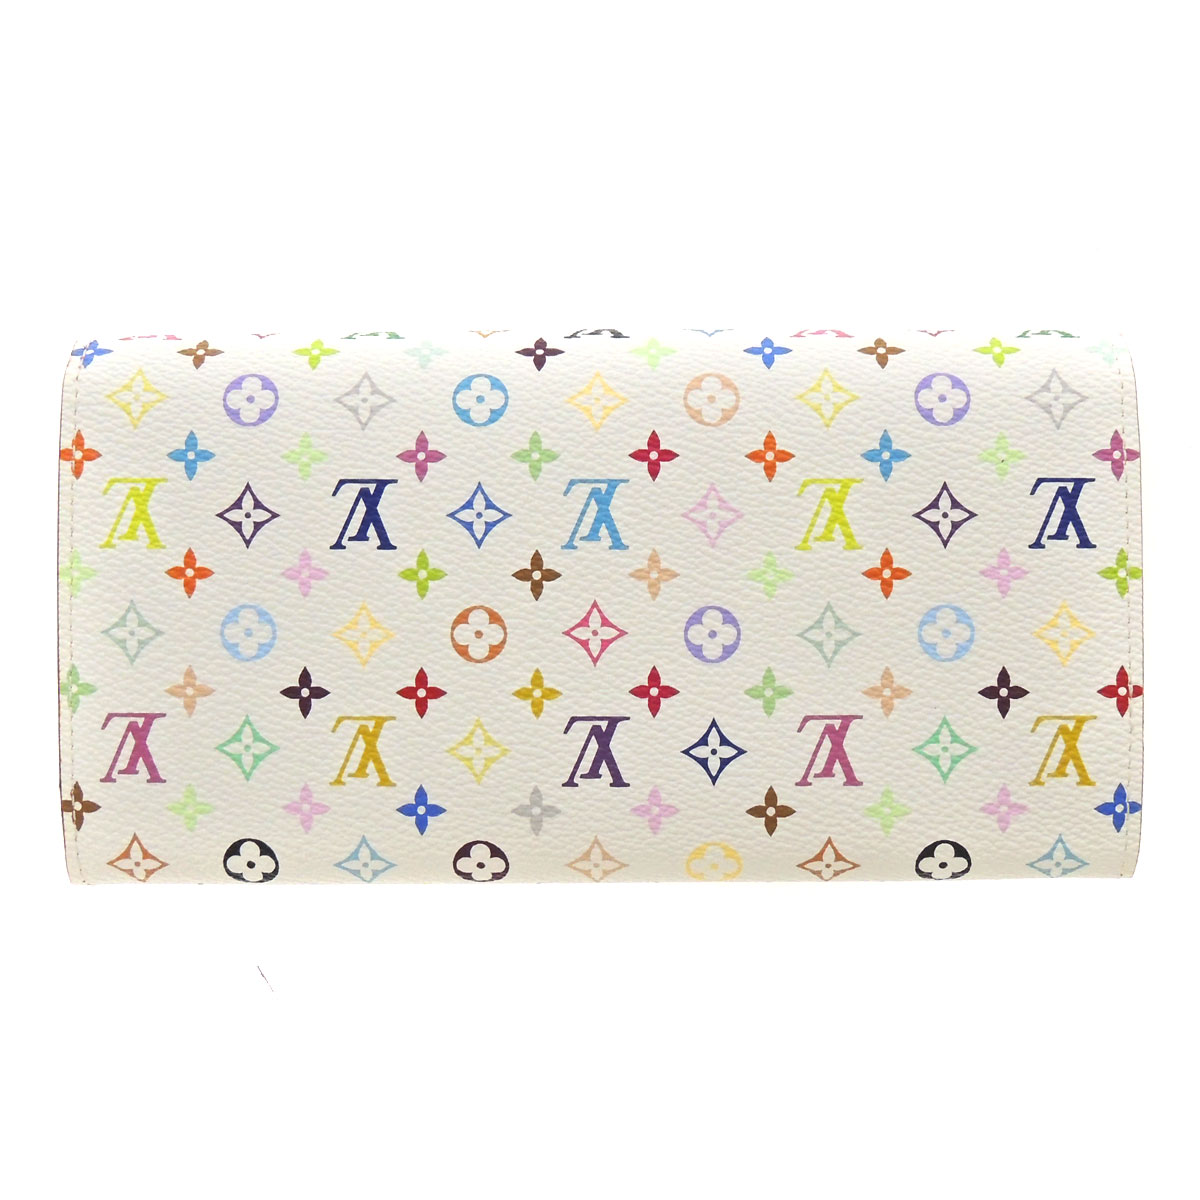 LOUIS VUITTON Pochette-port Monet, Credit Suisse M60004 wallet (purse and) ladies ' Monogram multi color canvas